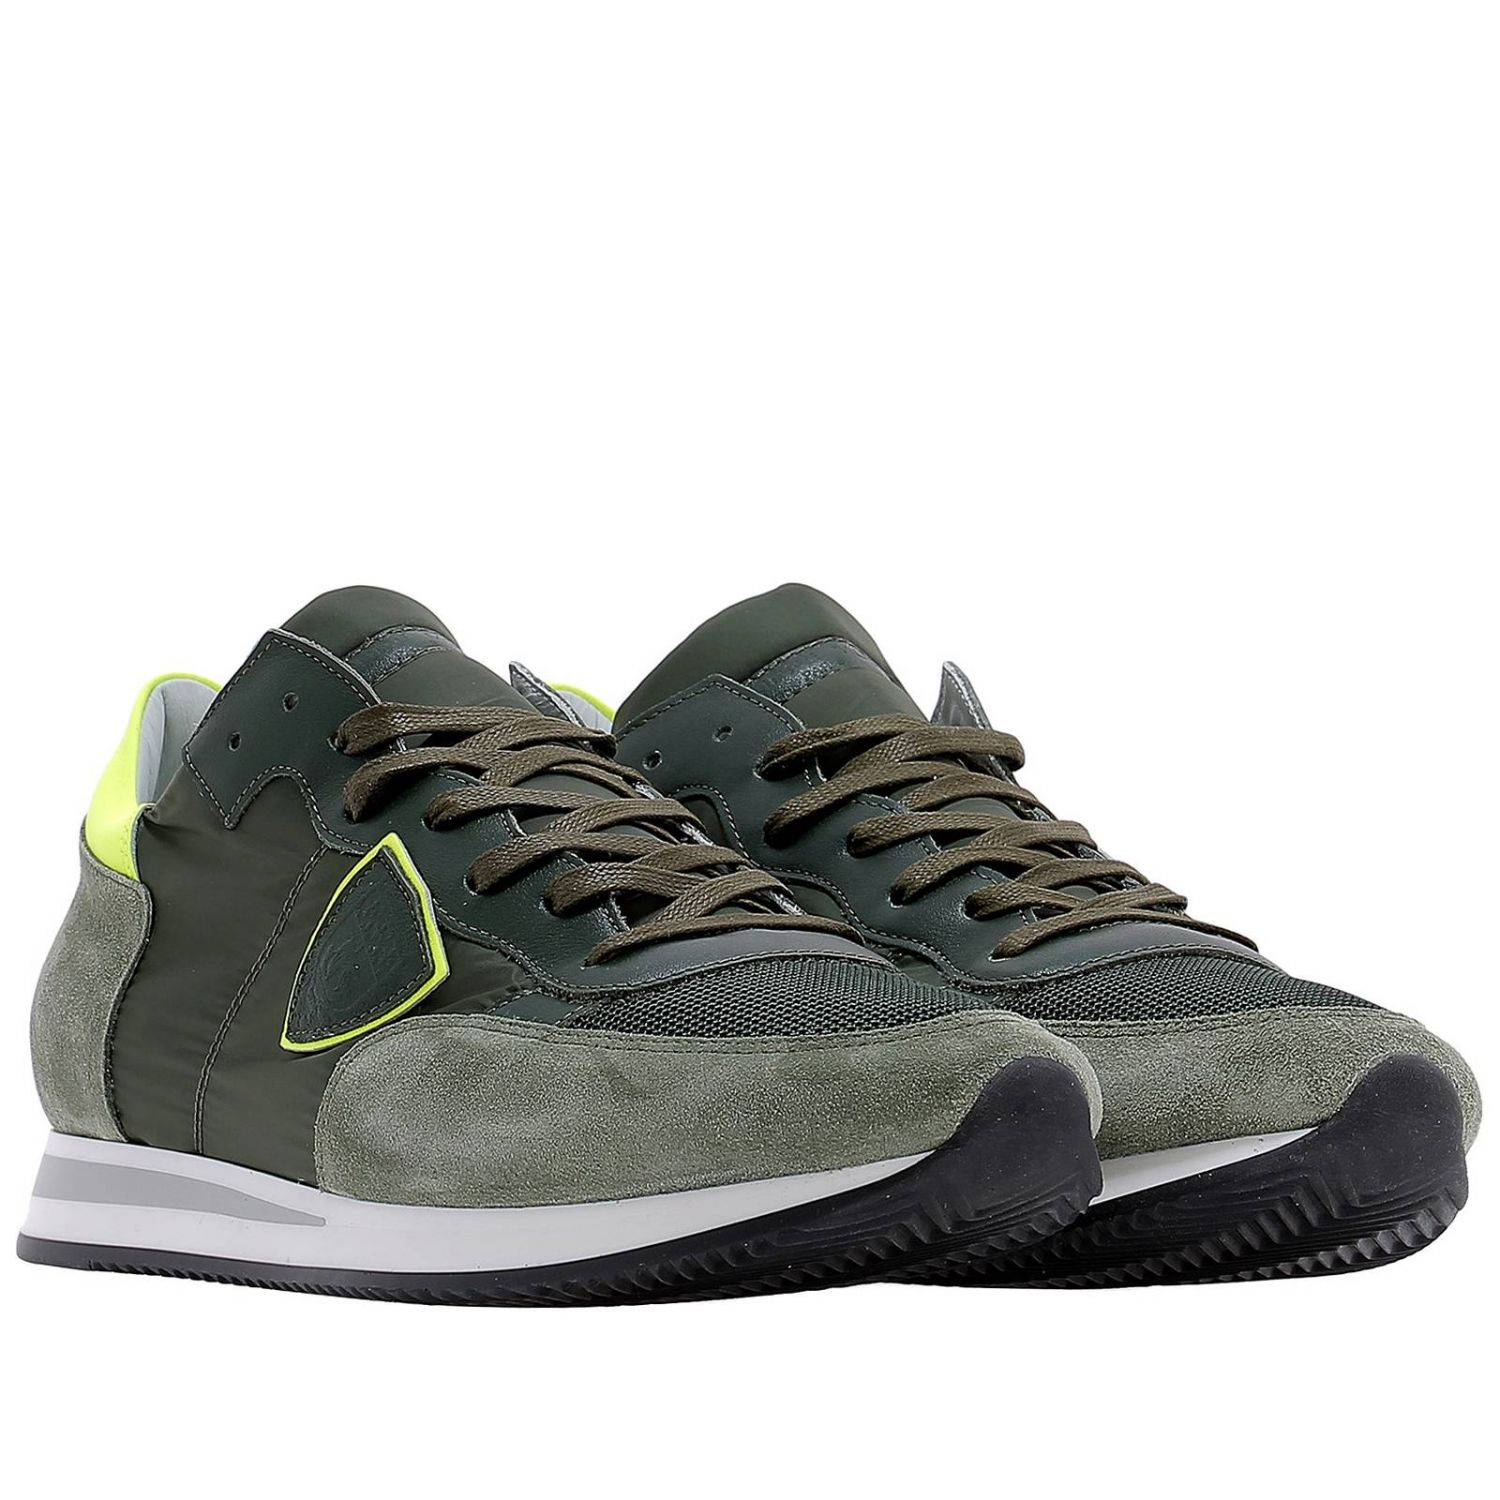 Baskets Philippe Model: Chaussures homme Philippe Model vert acide 2